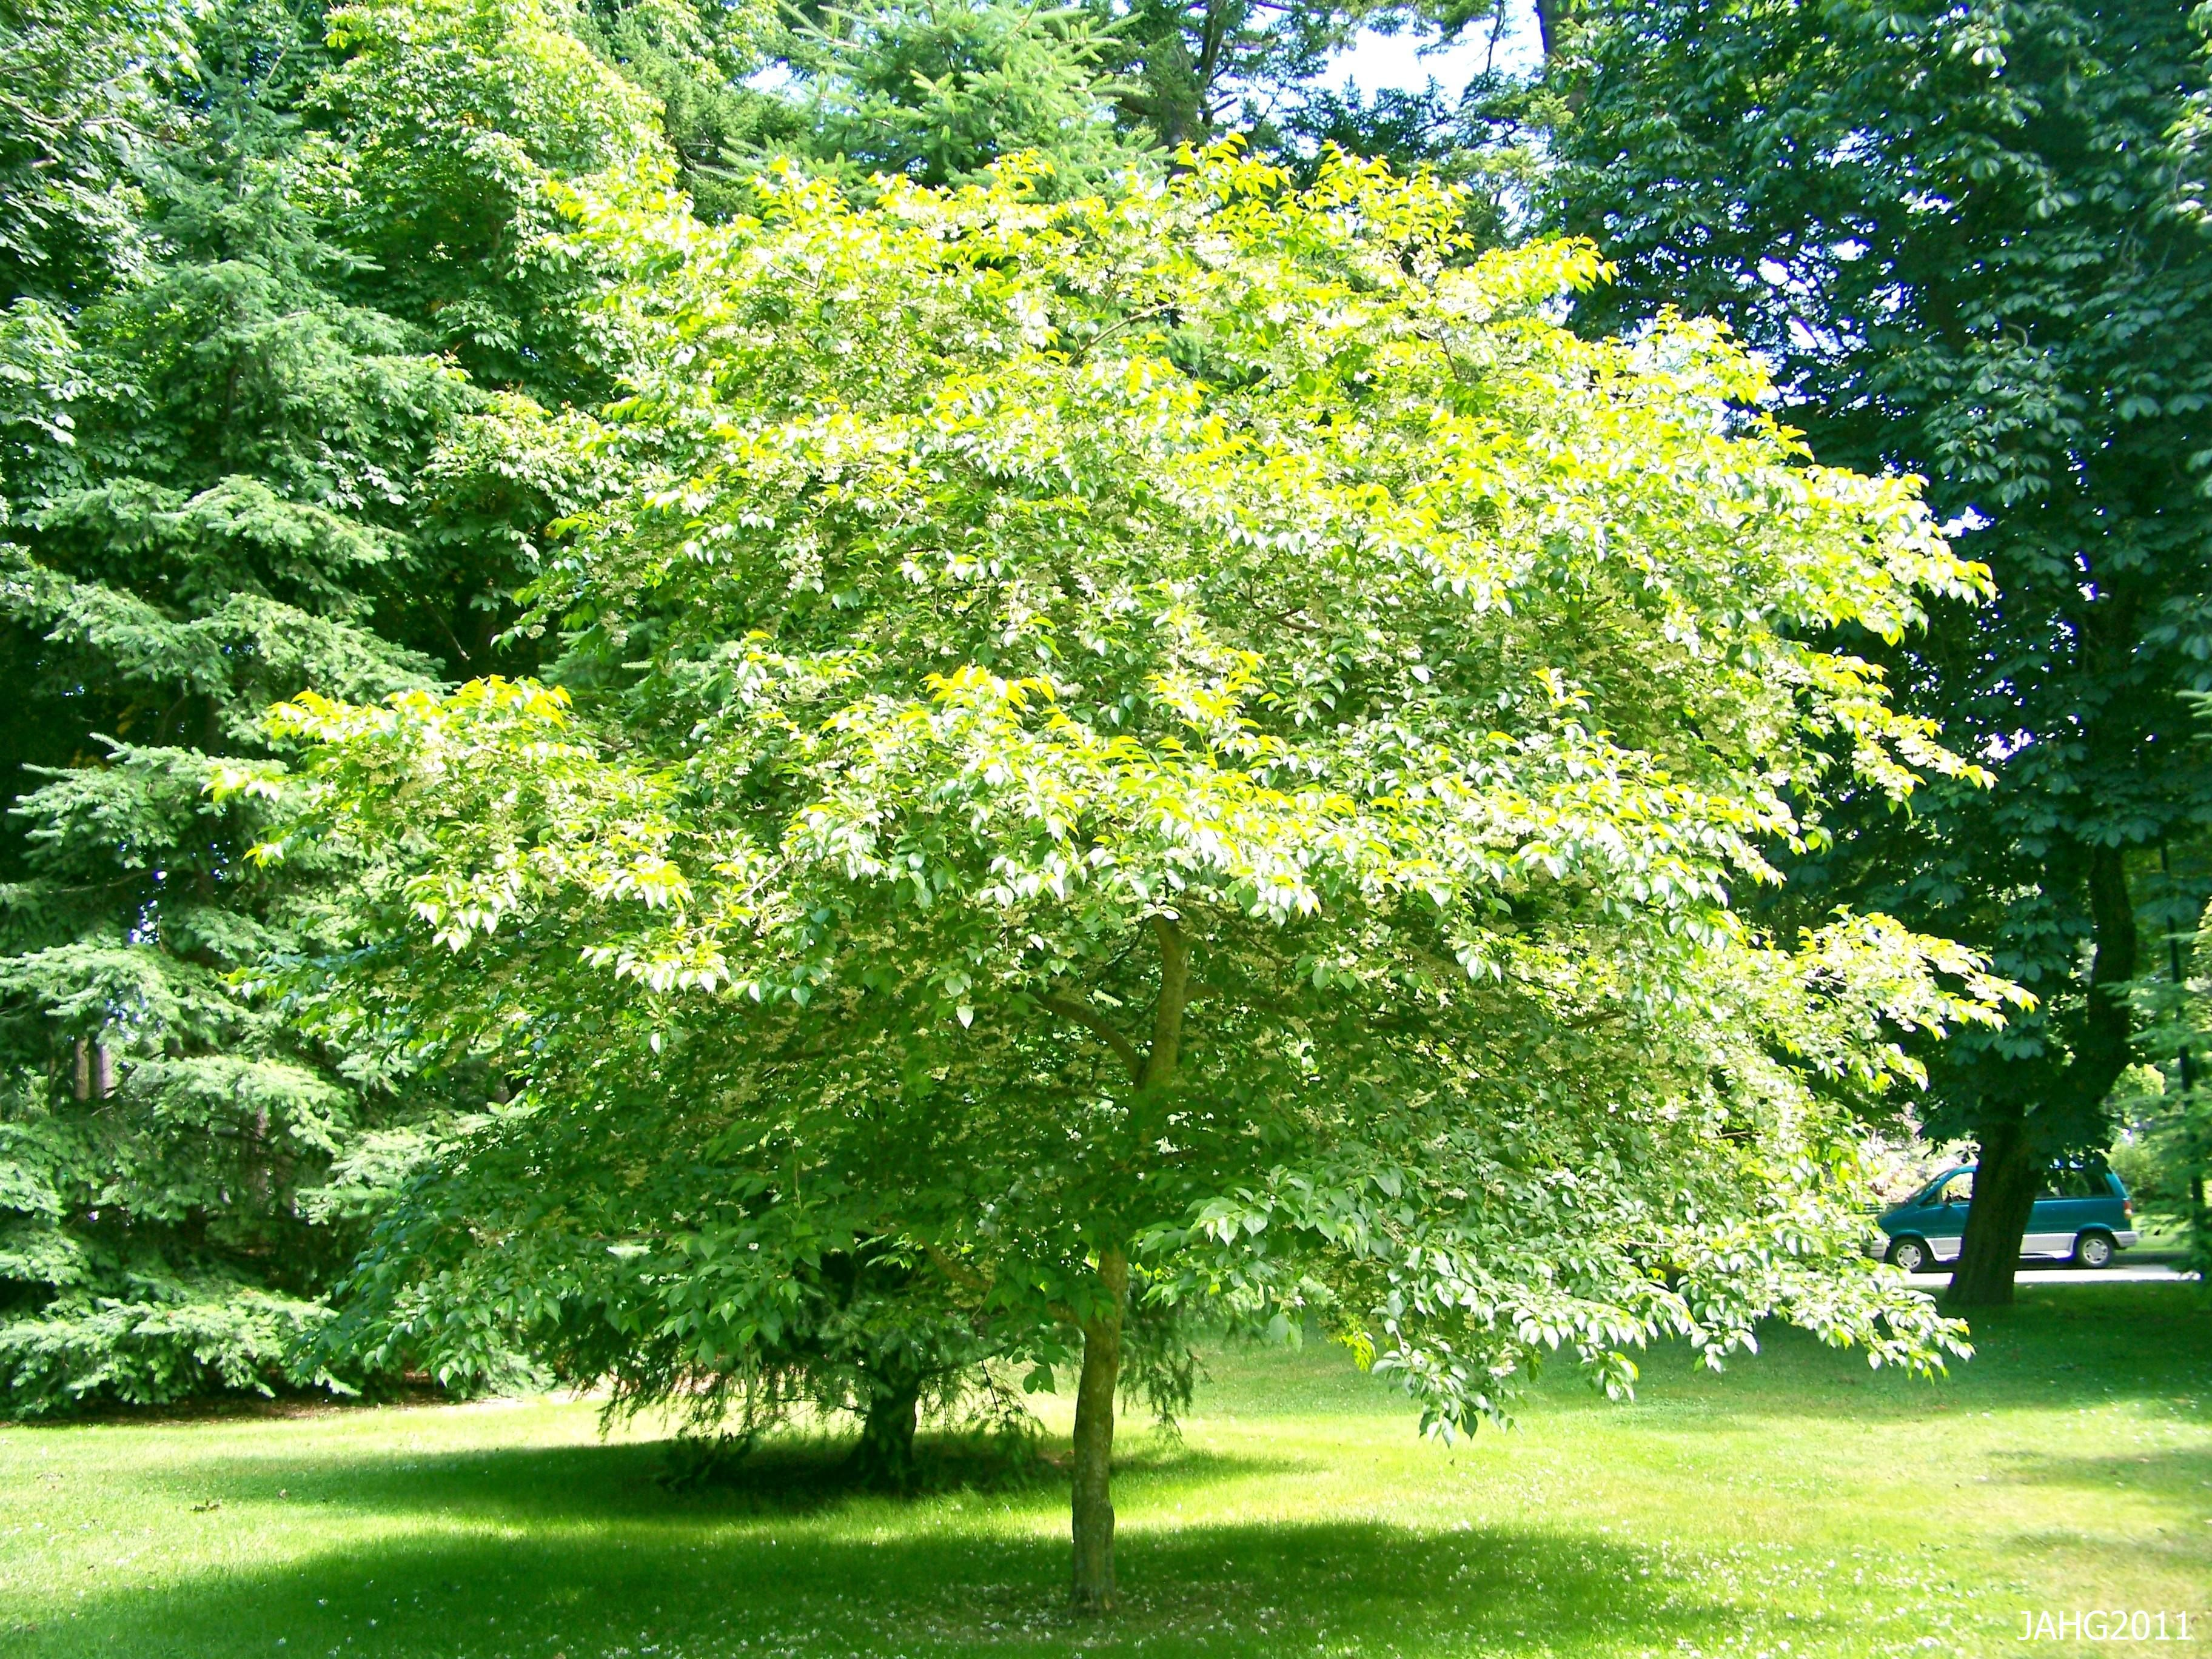 styrax japonicus japanese snowbell tree Google Search